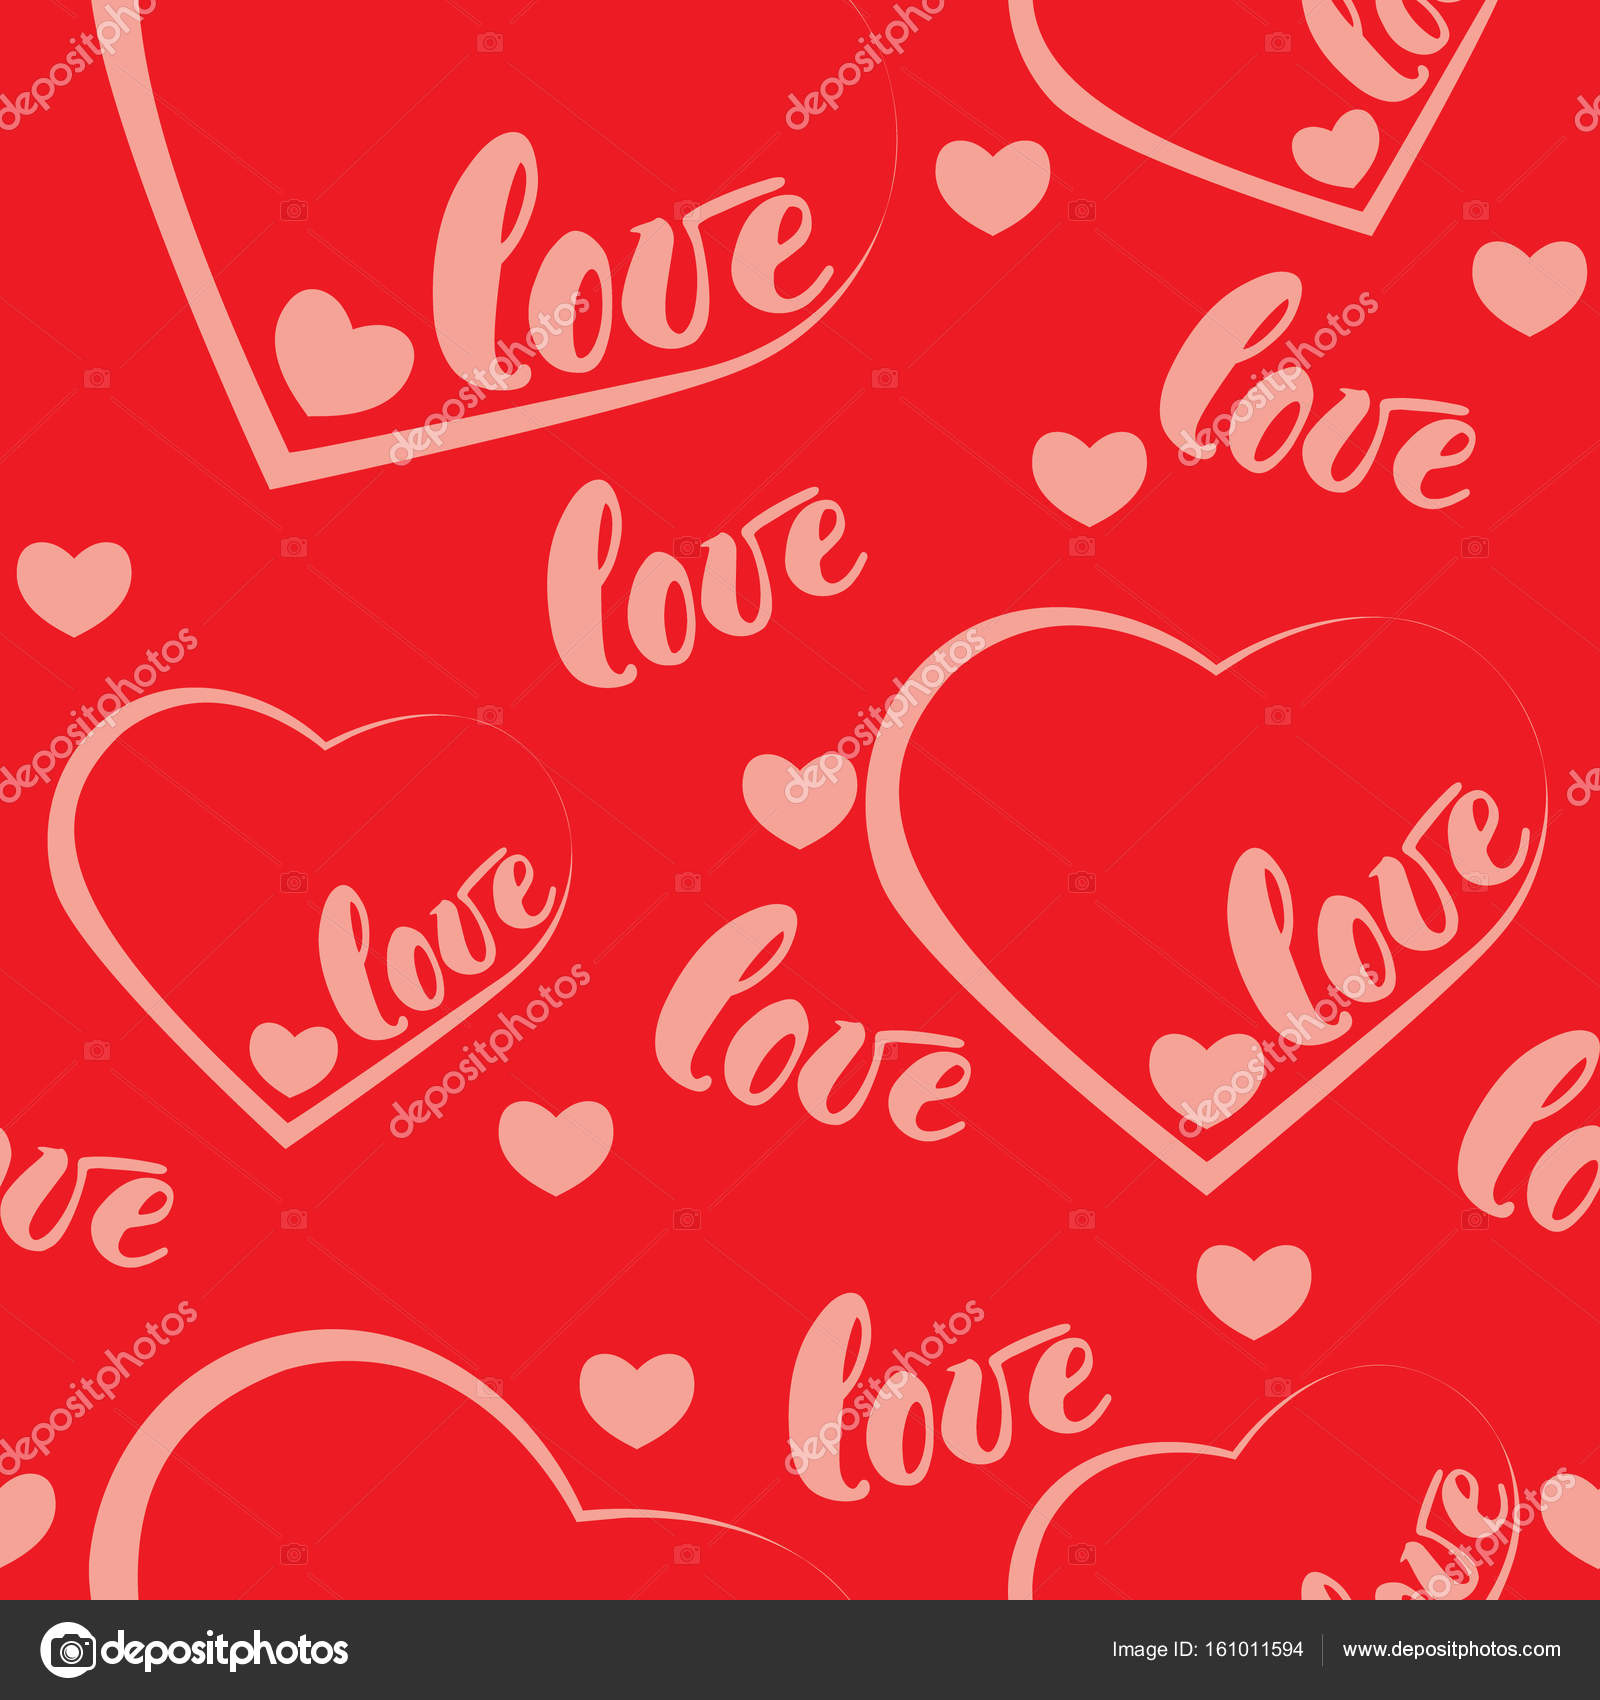 Lovely Romantic Red Love And Heart Pattern Background. Illustration For Holiday  Design. Many Flying Words